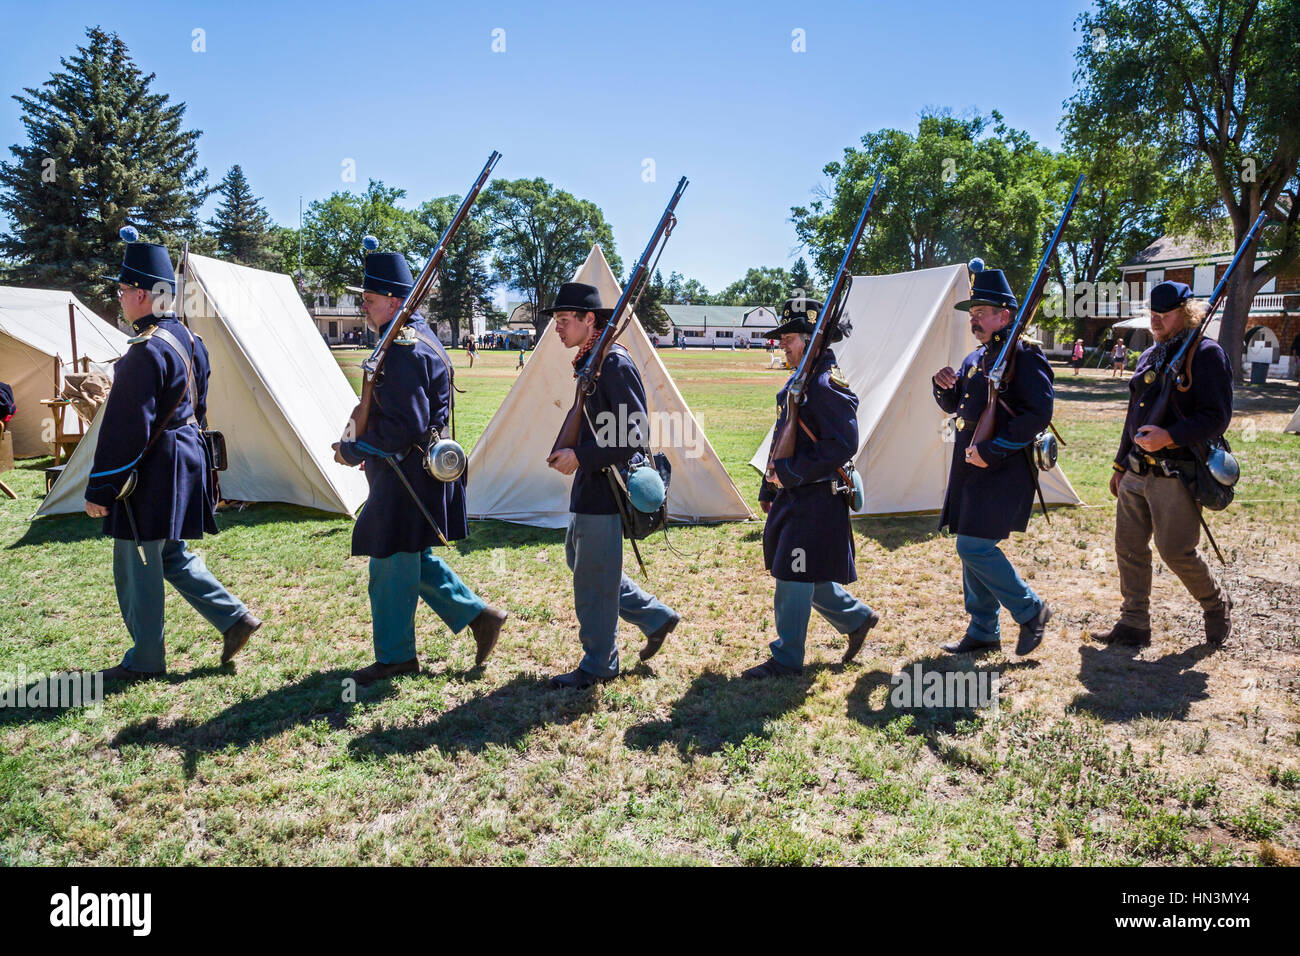 Fort stanton new mexico fort stanton live an annual living history program fort stanton was built in 1855 during the indian wars